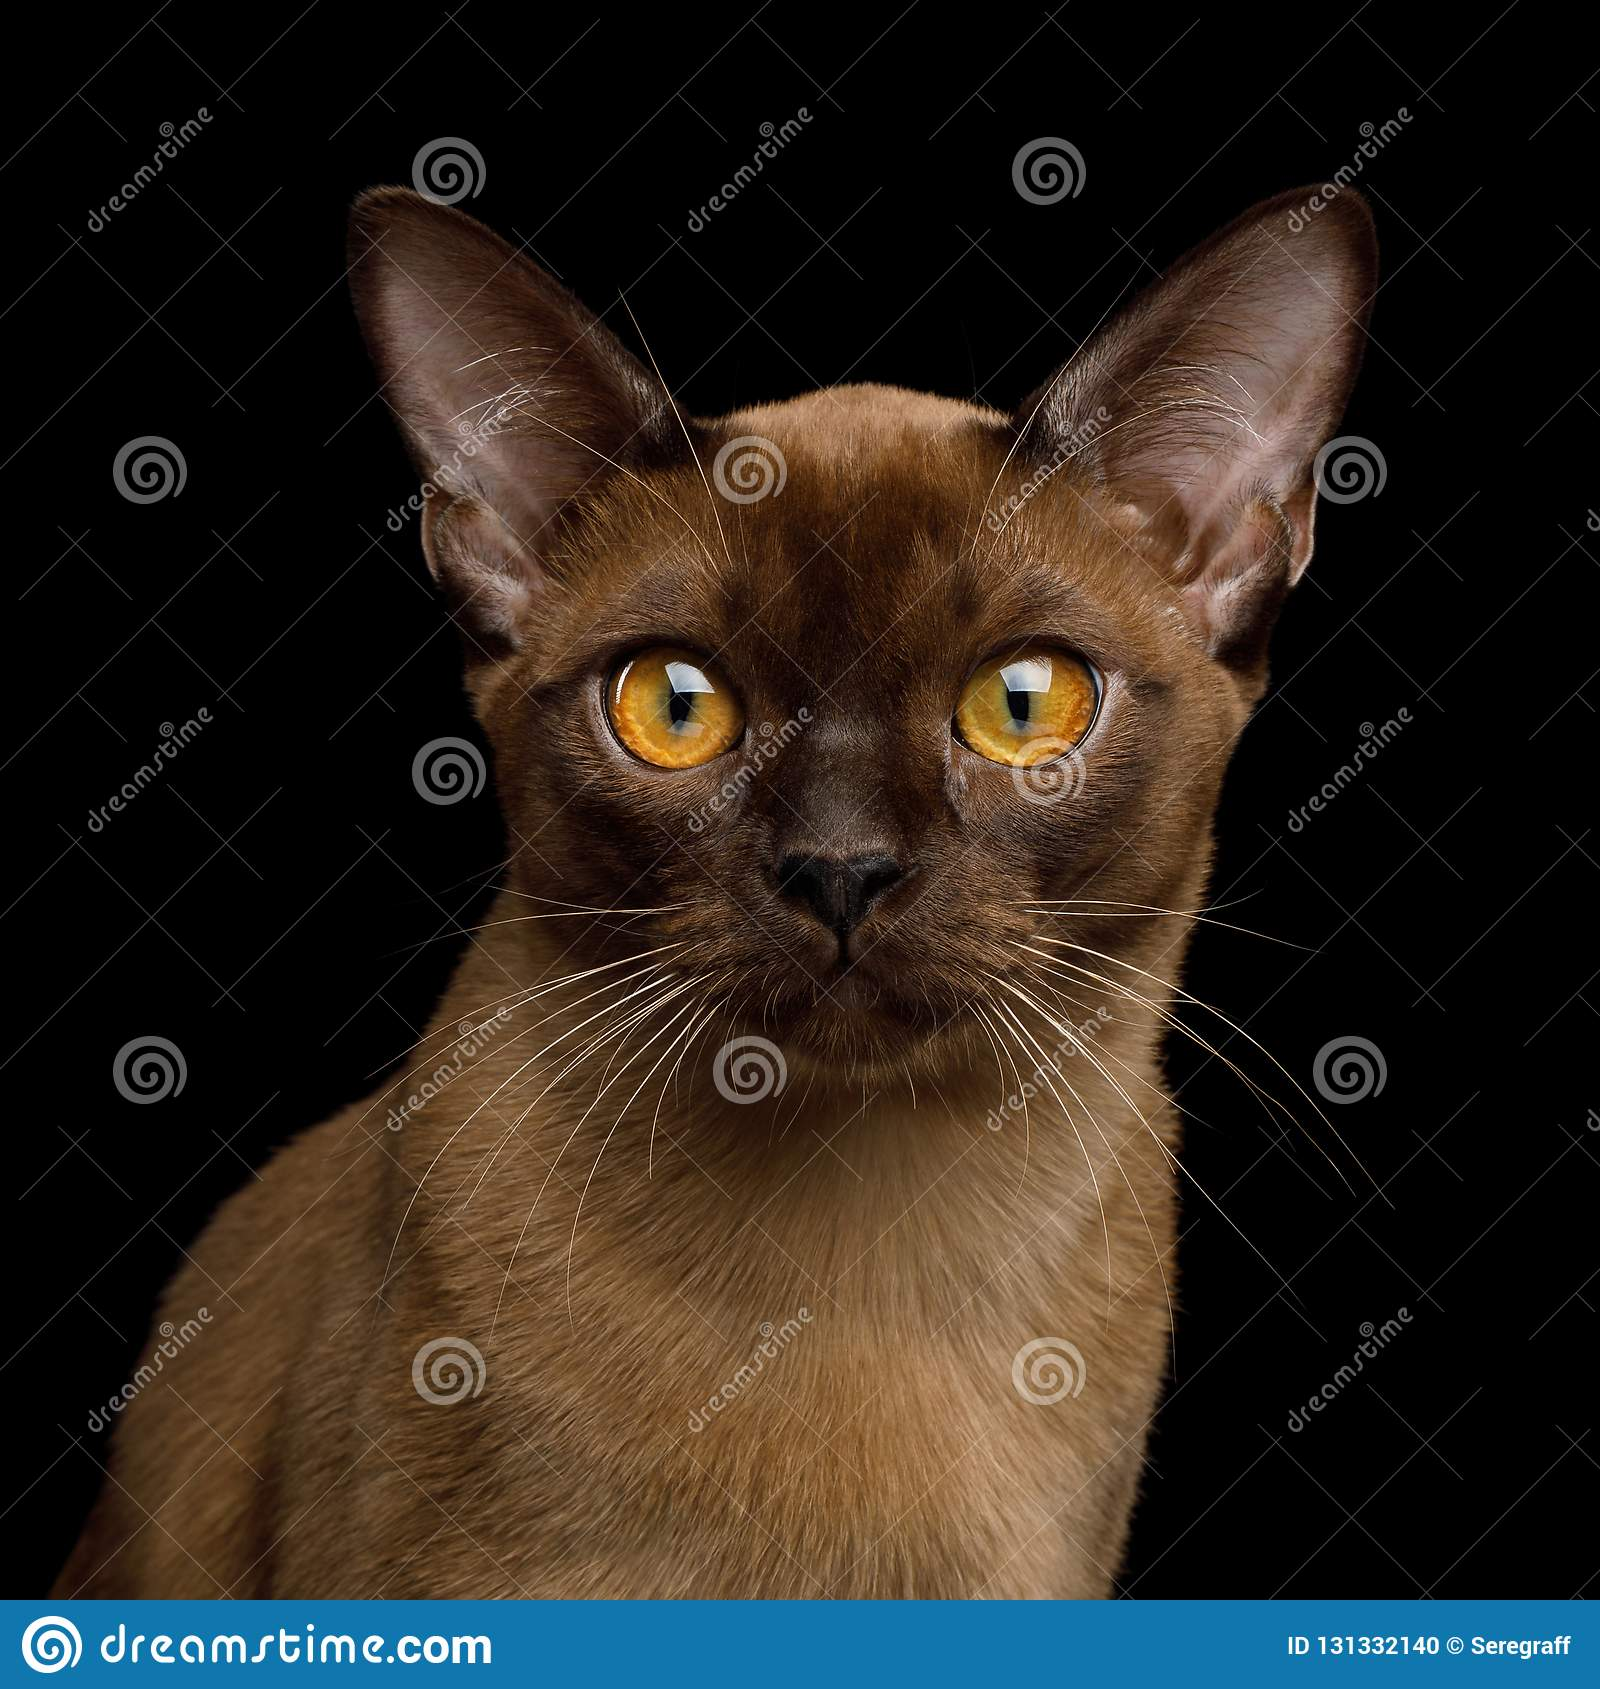 Brown burma cat isolated on black background